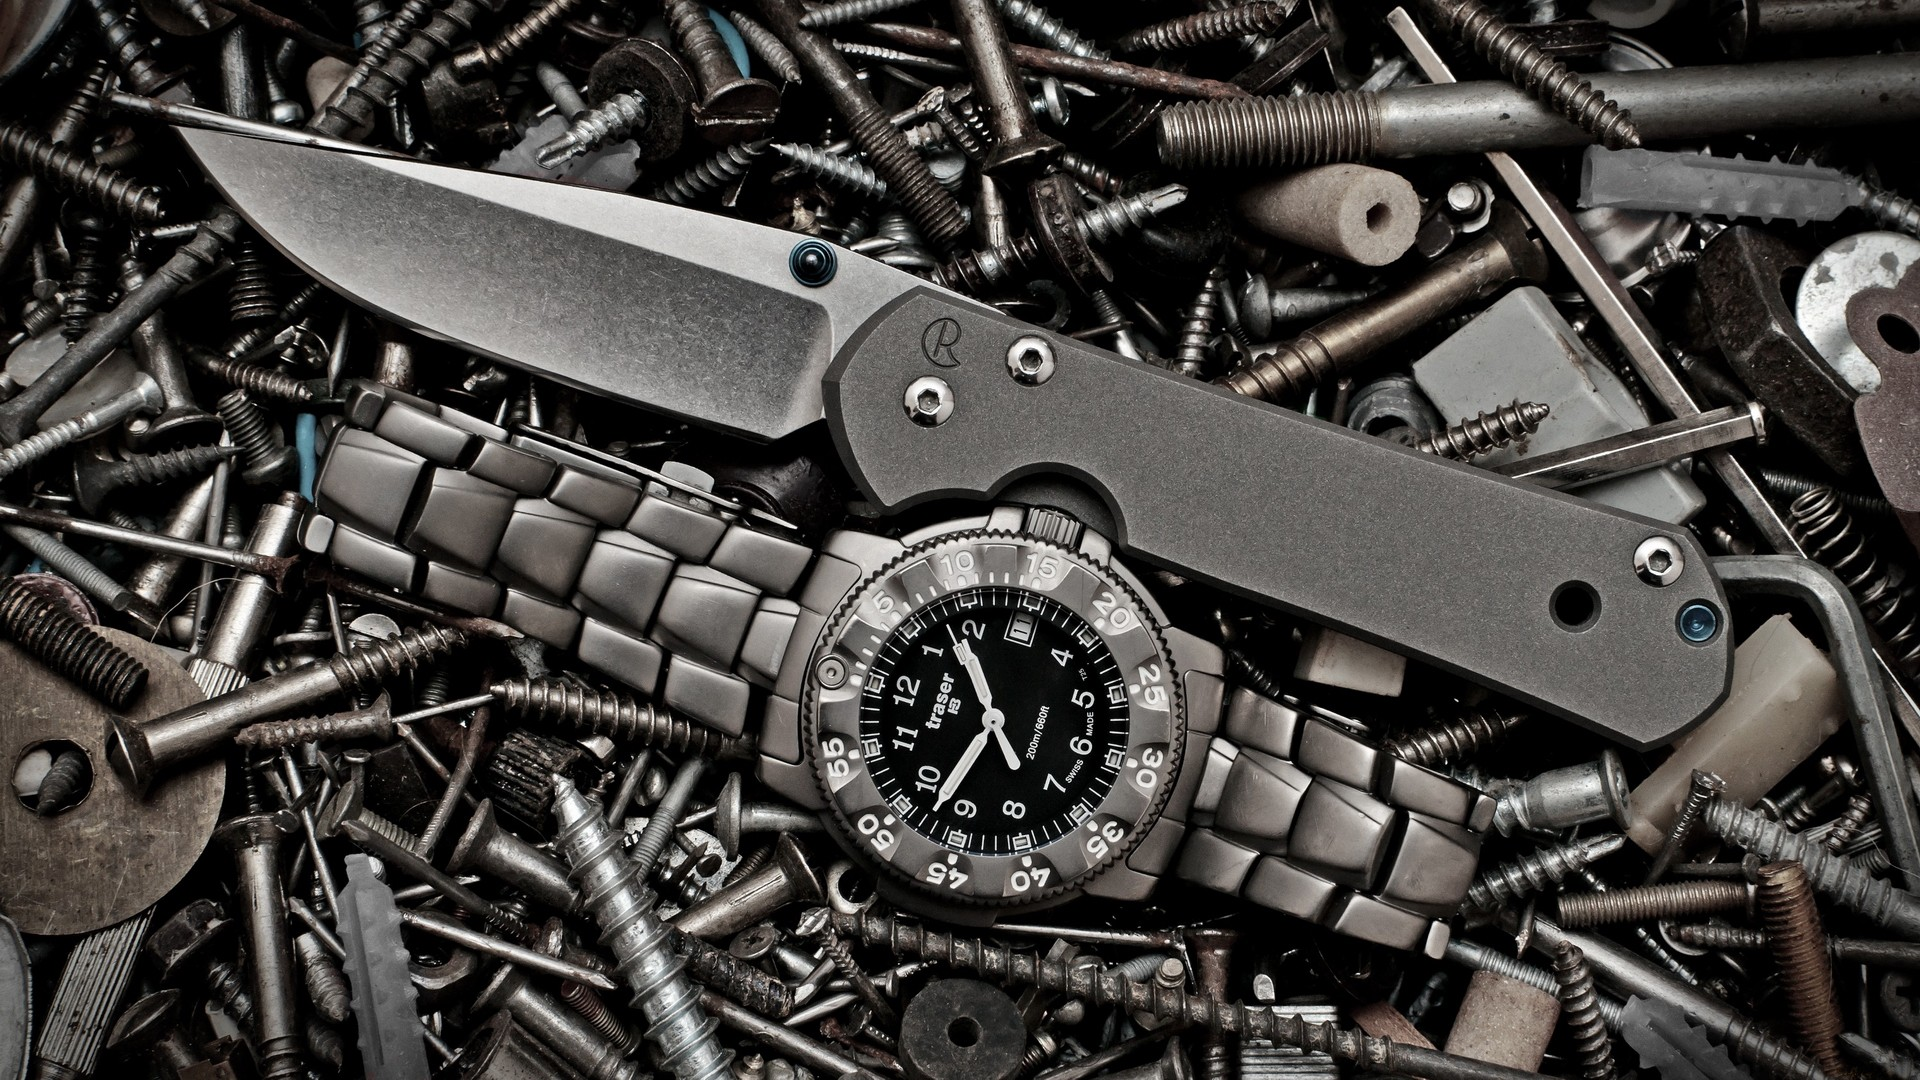 steel, metallic, bolt, tools, nails, knives, watches, screw, time ...